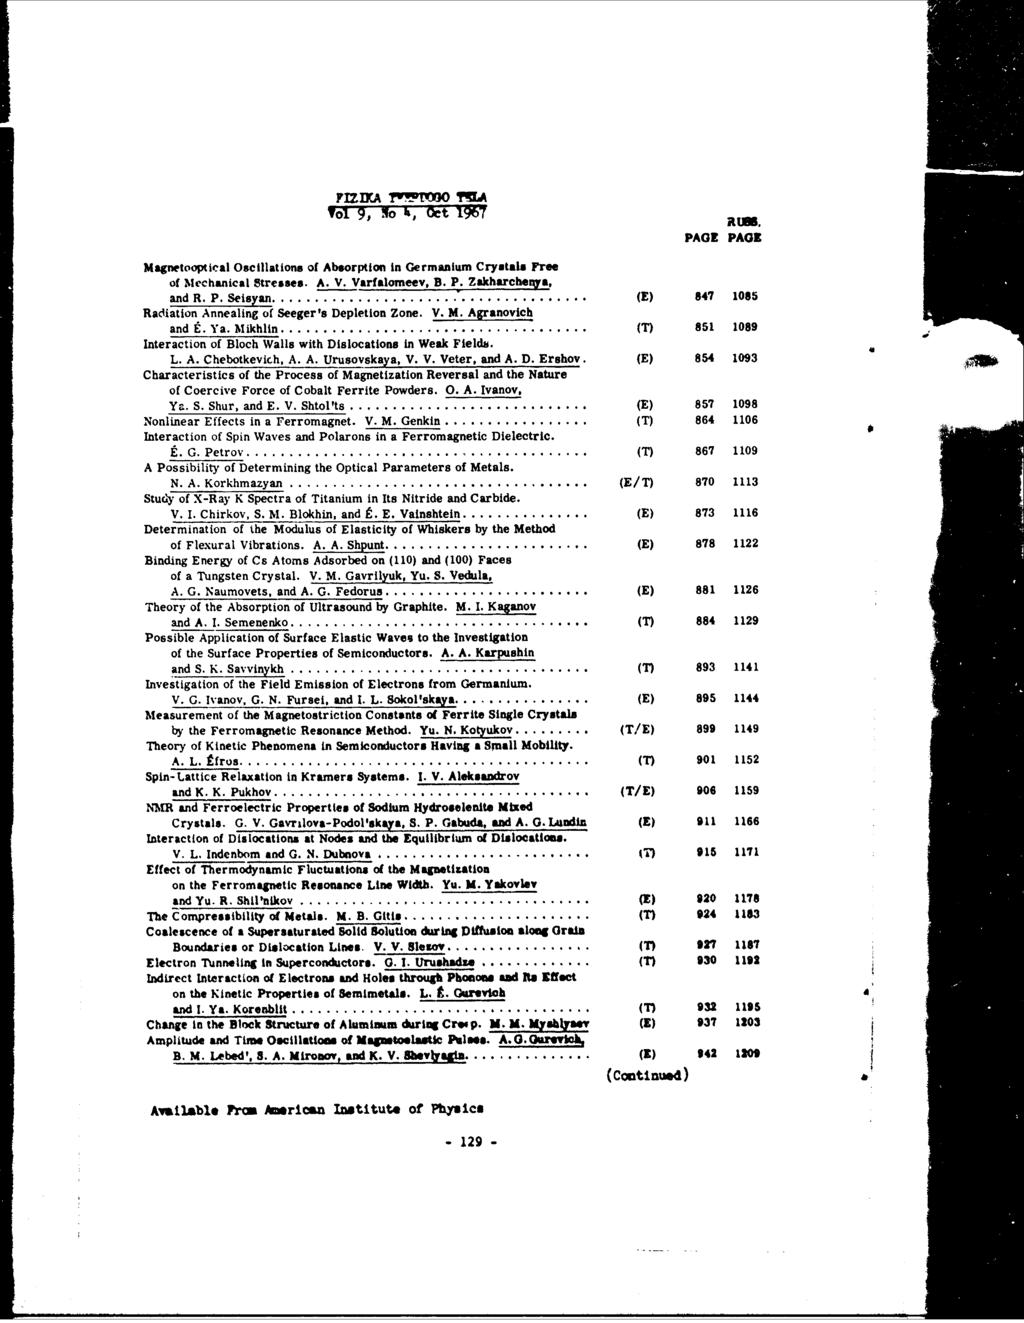 To Approved For Public Release Distribution Unlimited Pdf Tehnike Nauke Integrated Electronics Analog And Digital Circuits Fizikawstrjo Ma Vol Igt Ocn 1967 Rw Page Magnetooptical Oscillations Of Absorption